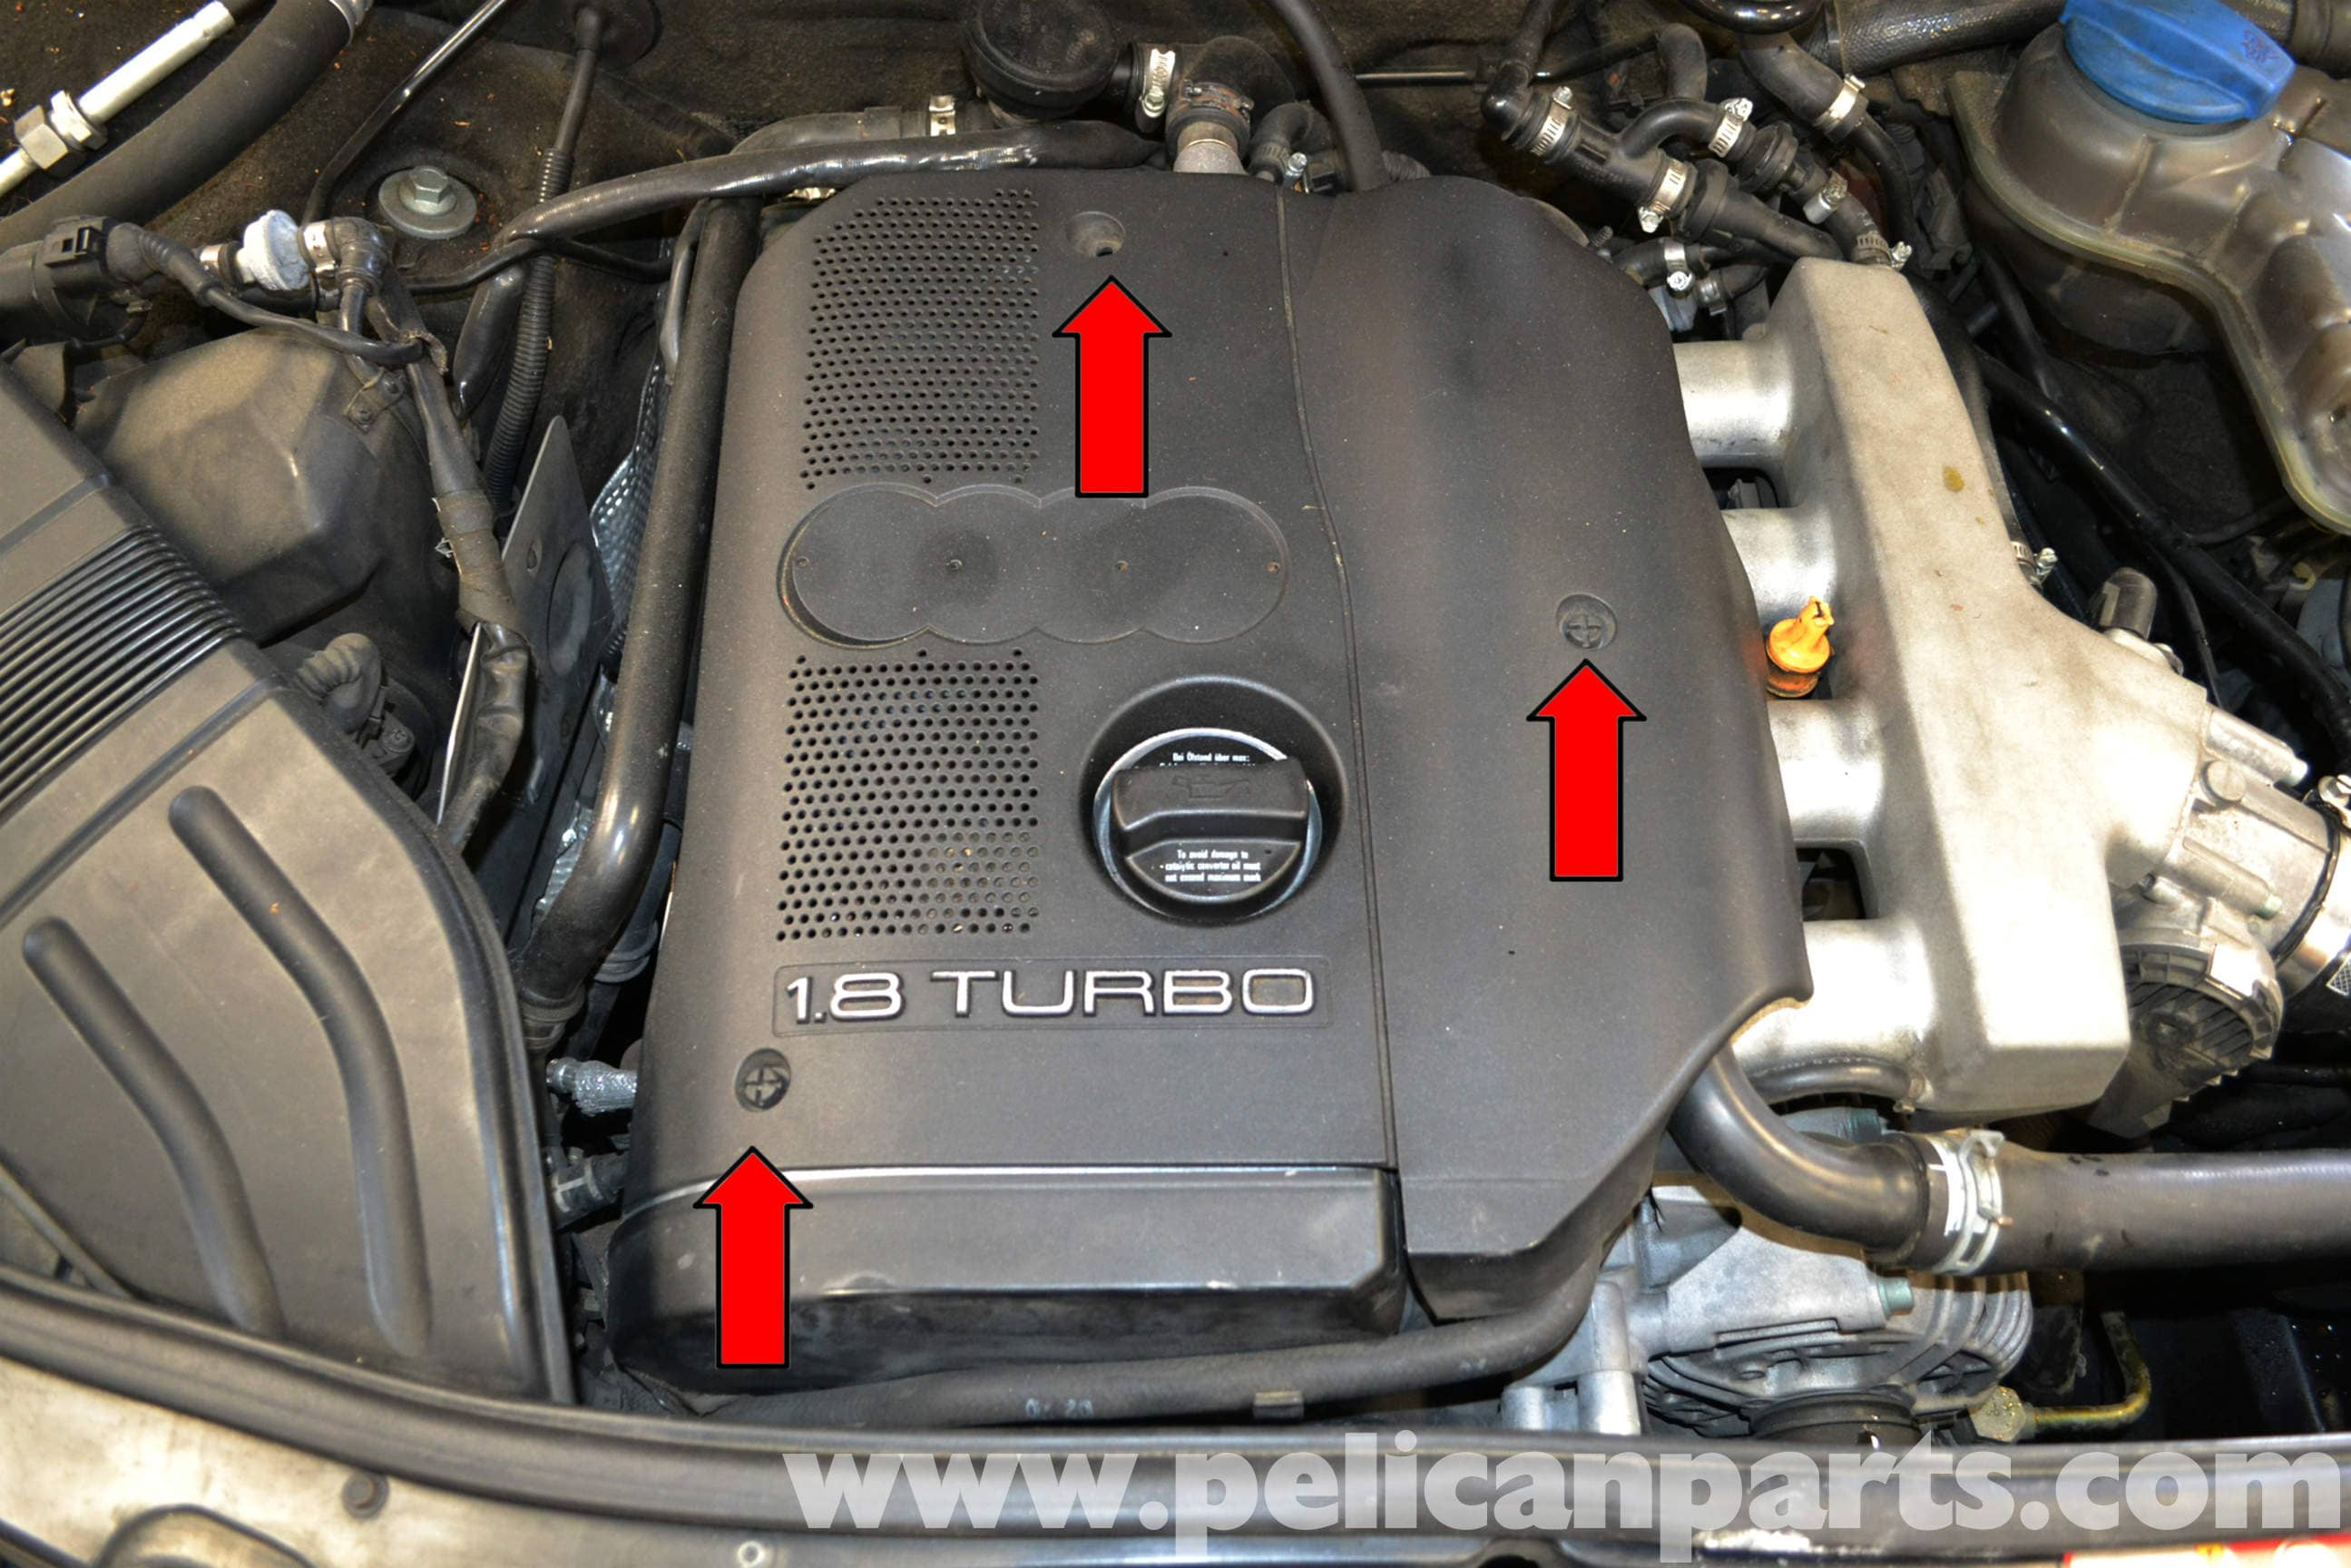 audi a4 b6 engine cover removal 1 8t 2002 2008 pelican. Black Bedroom Furniture Sets. Home Design Ideas